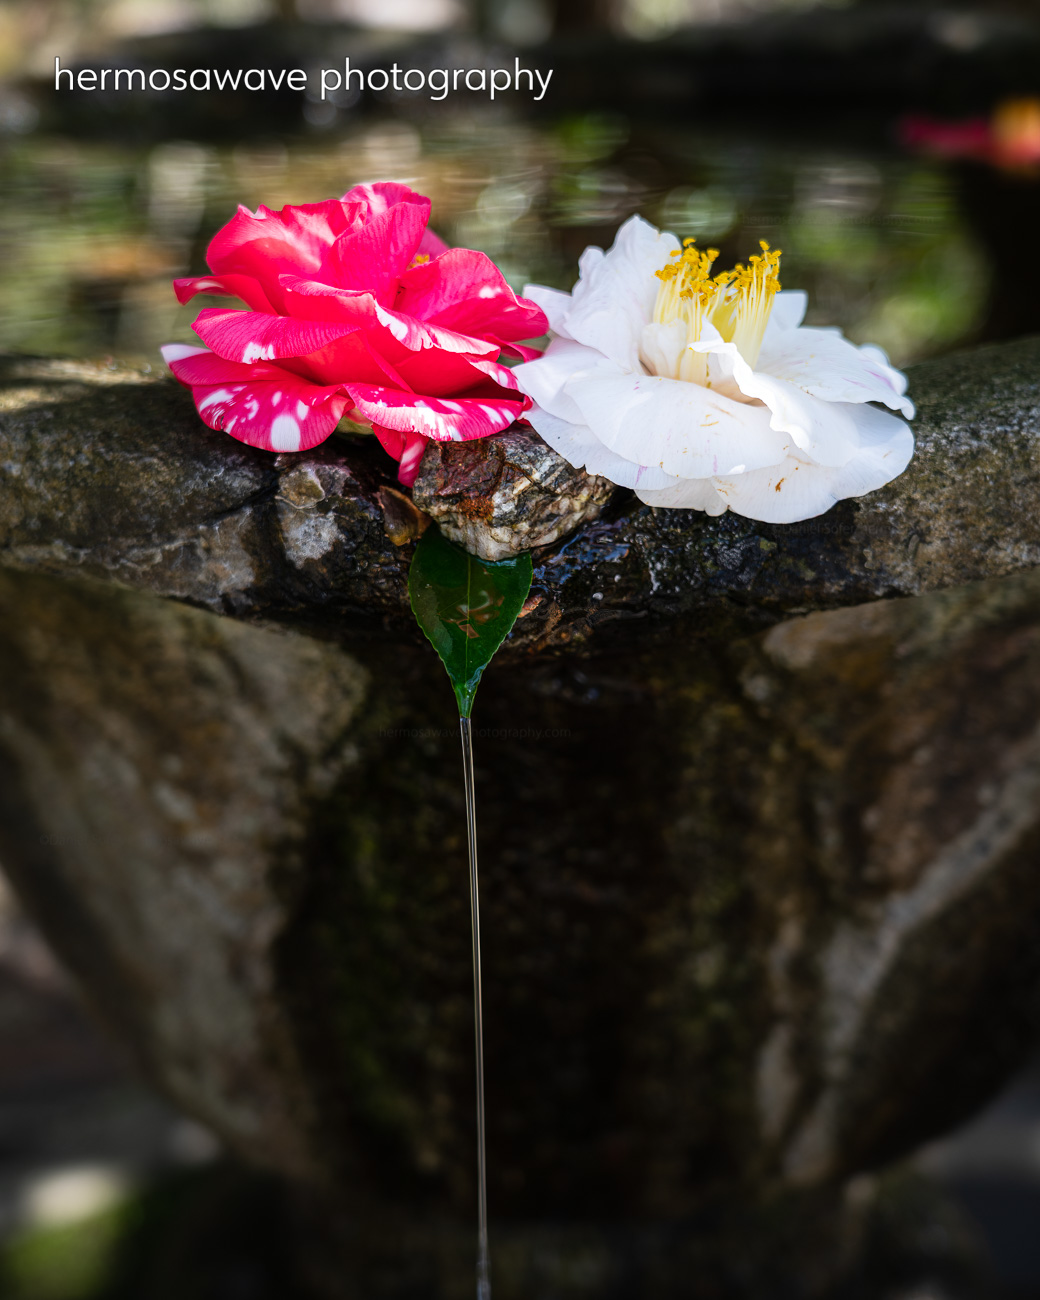 Water Basin with Camellias・蹲のツバキ